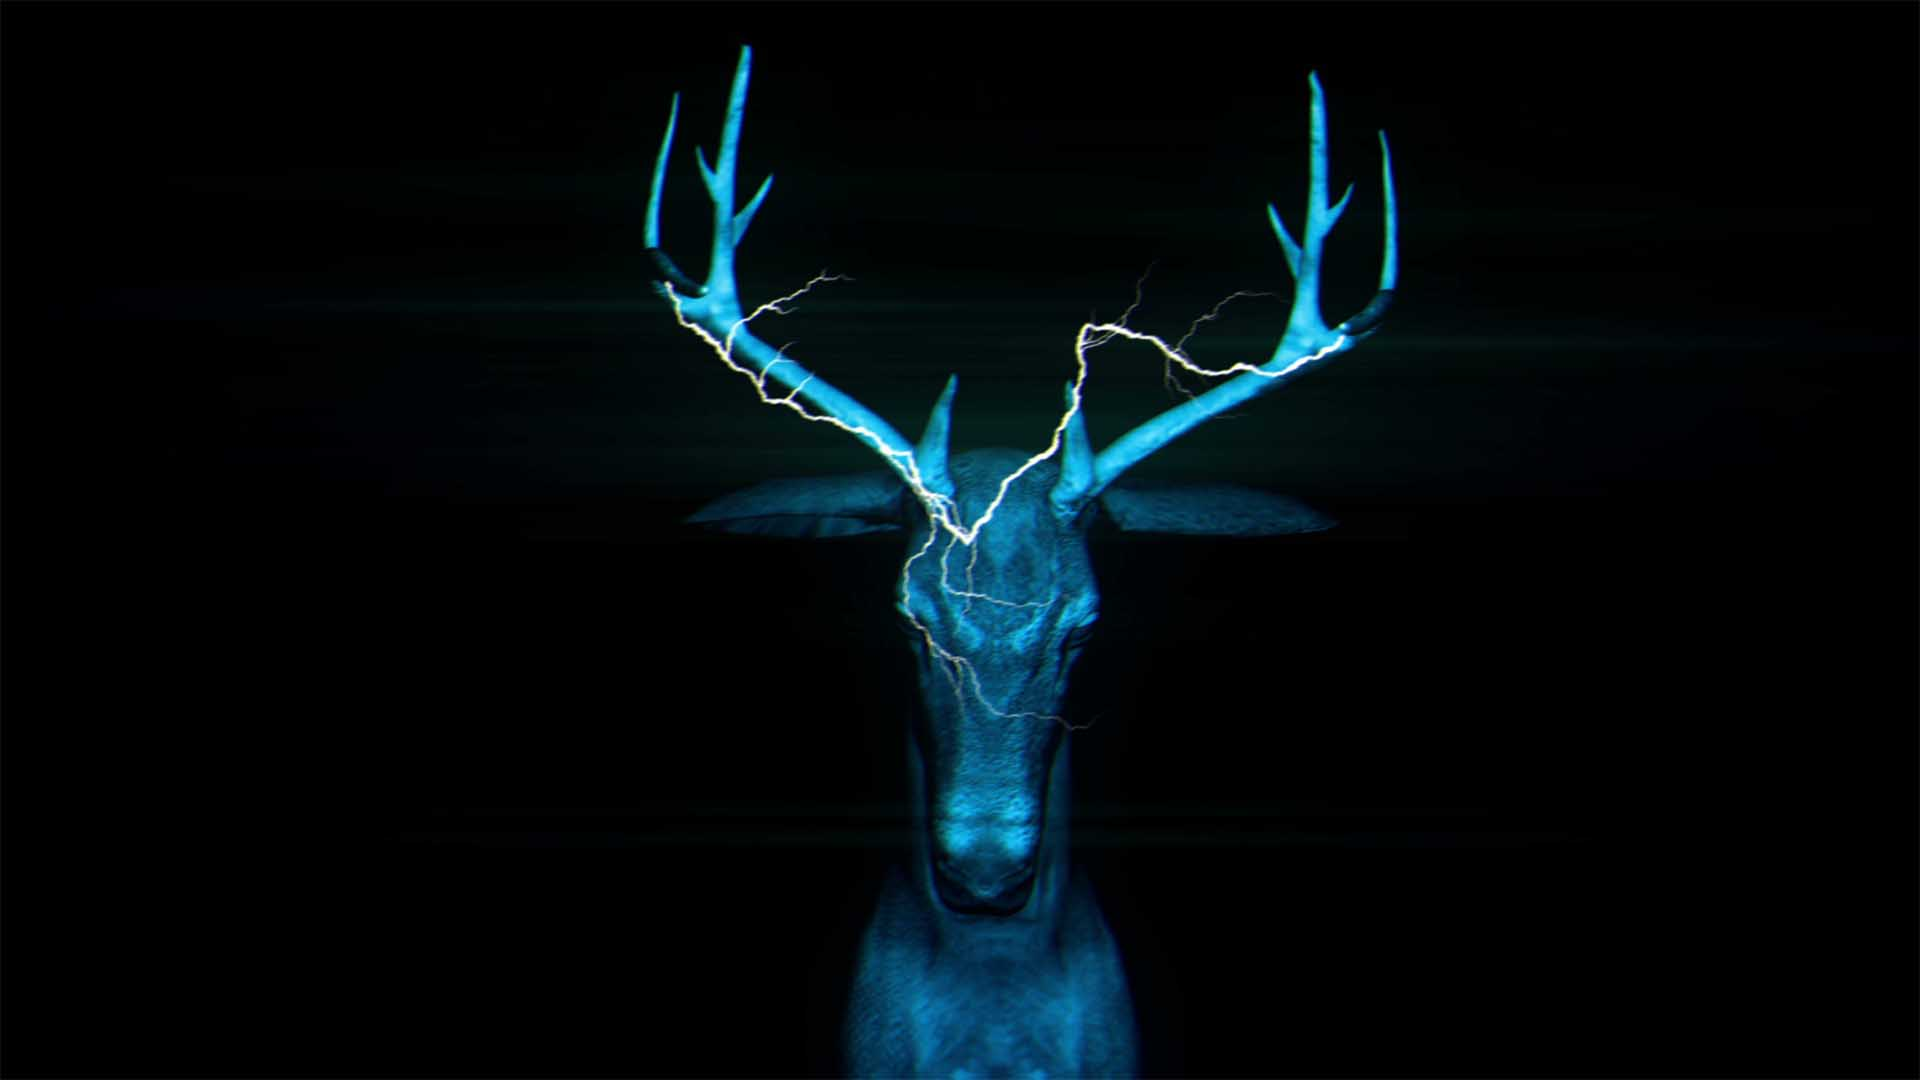 Neon_Deers_EDM_Visuals_Beat_VJ_Loops_3D_Animation